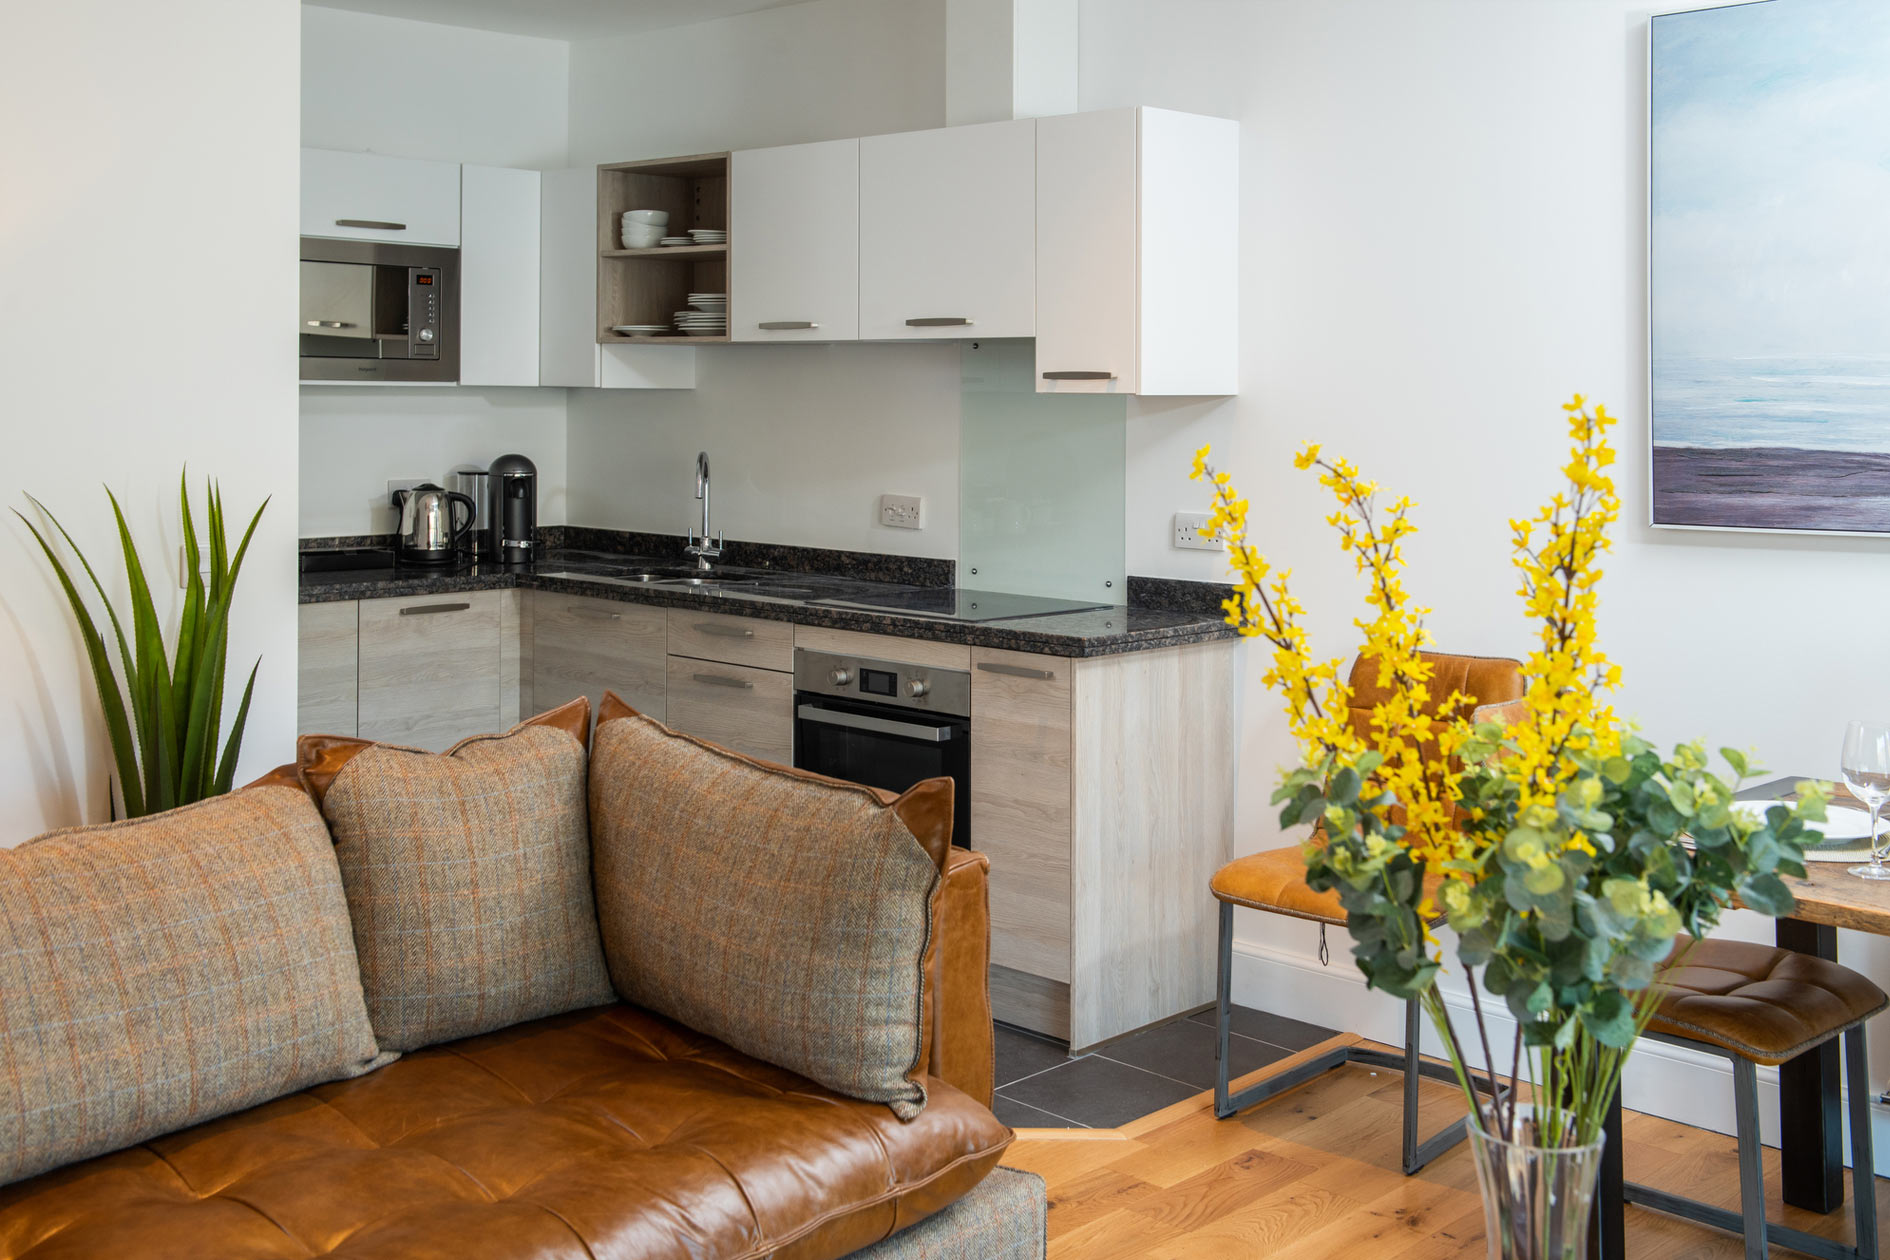 Open Living Space With Modern Kitchen And Brown Leather Sofa With Tweed Style Cushions And Vase Of Yellow Flowers